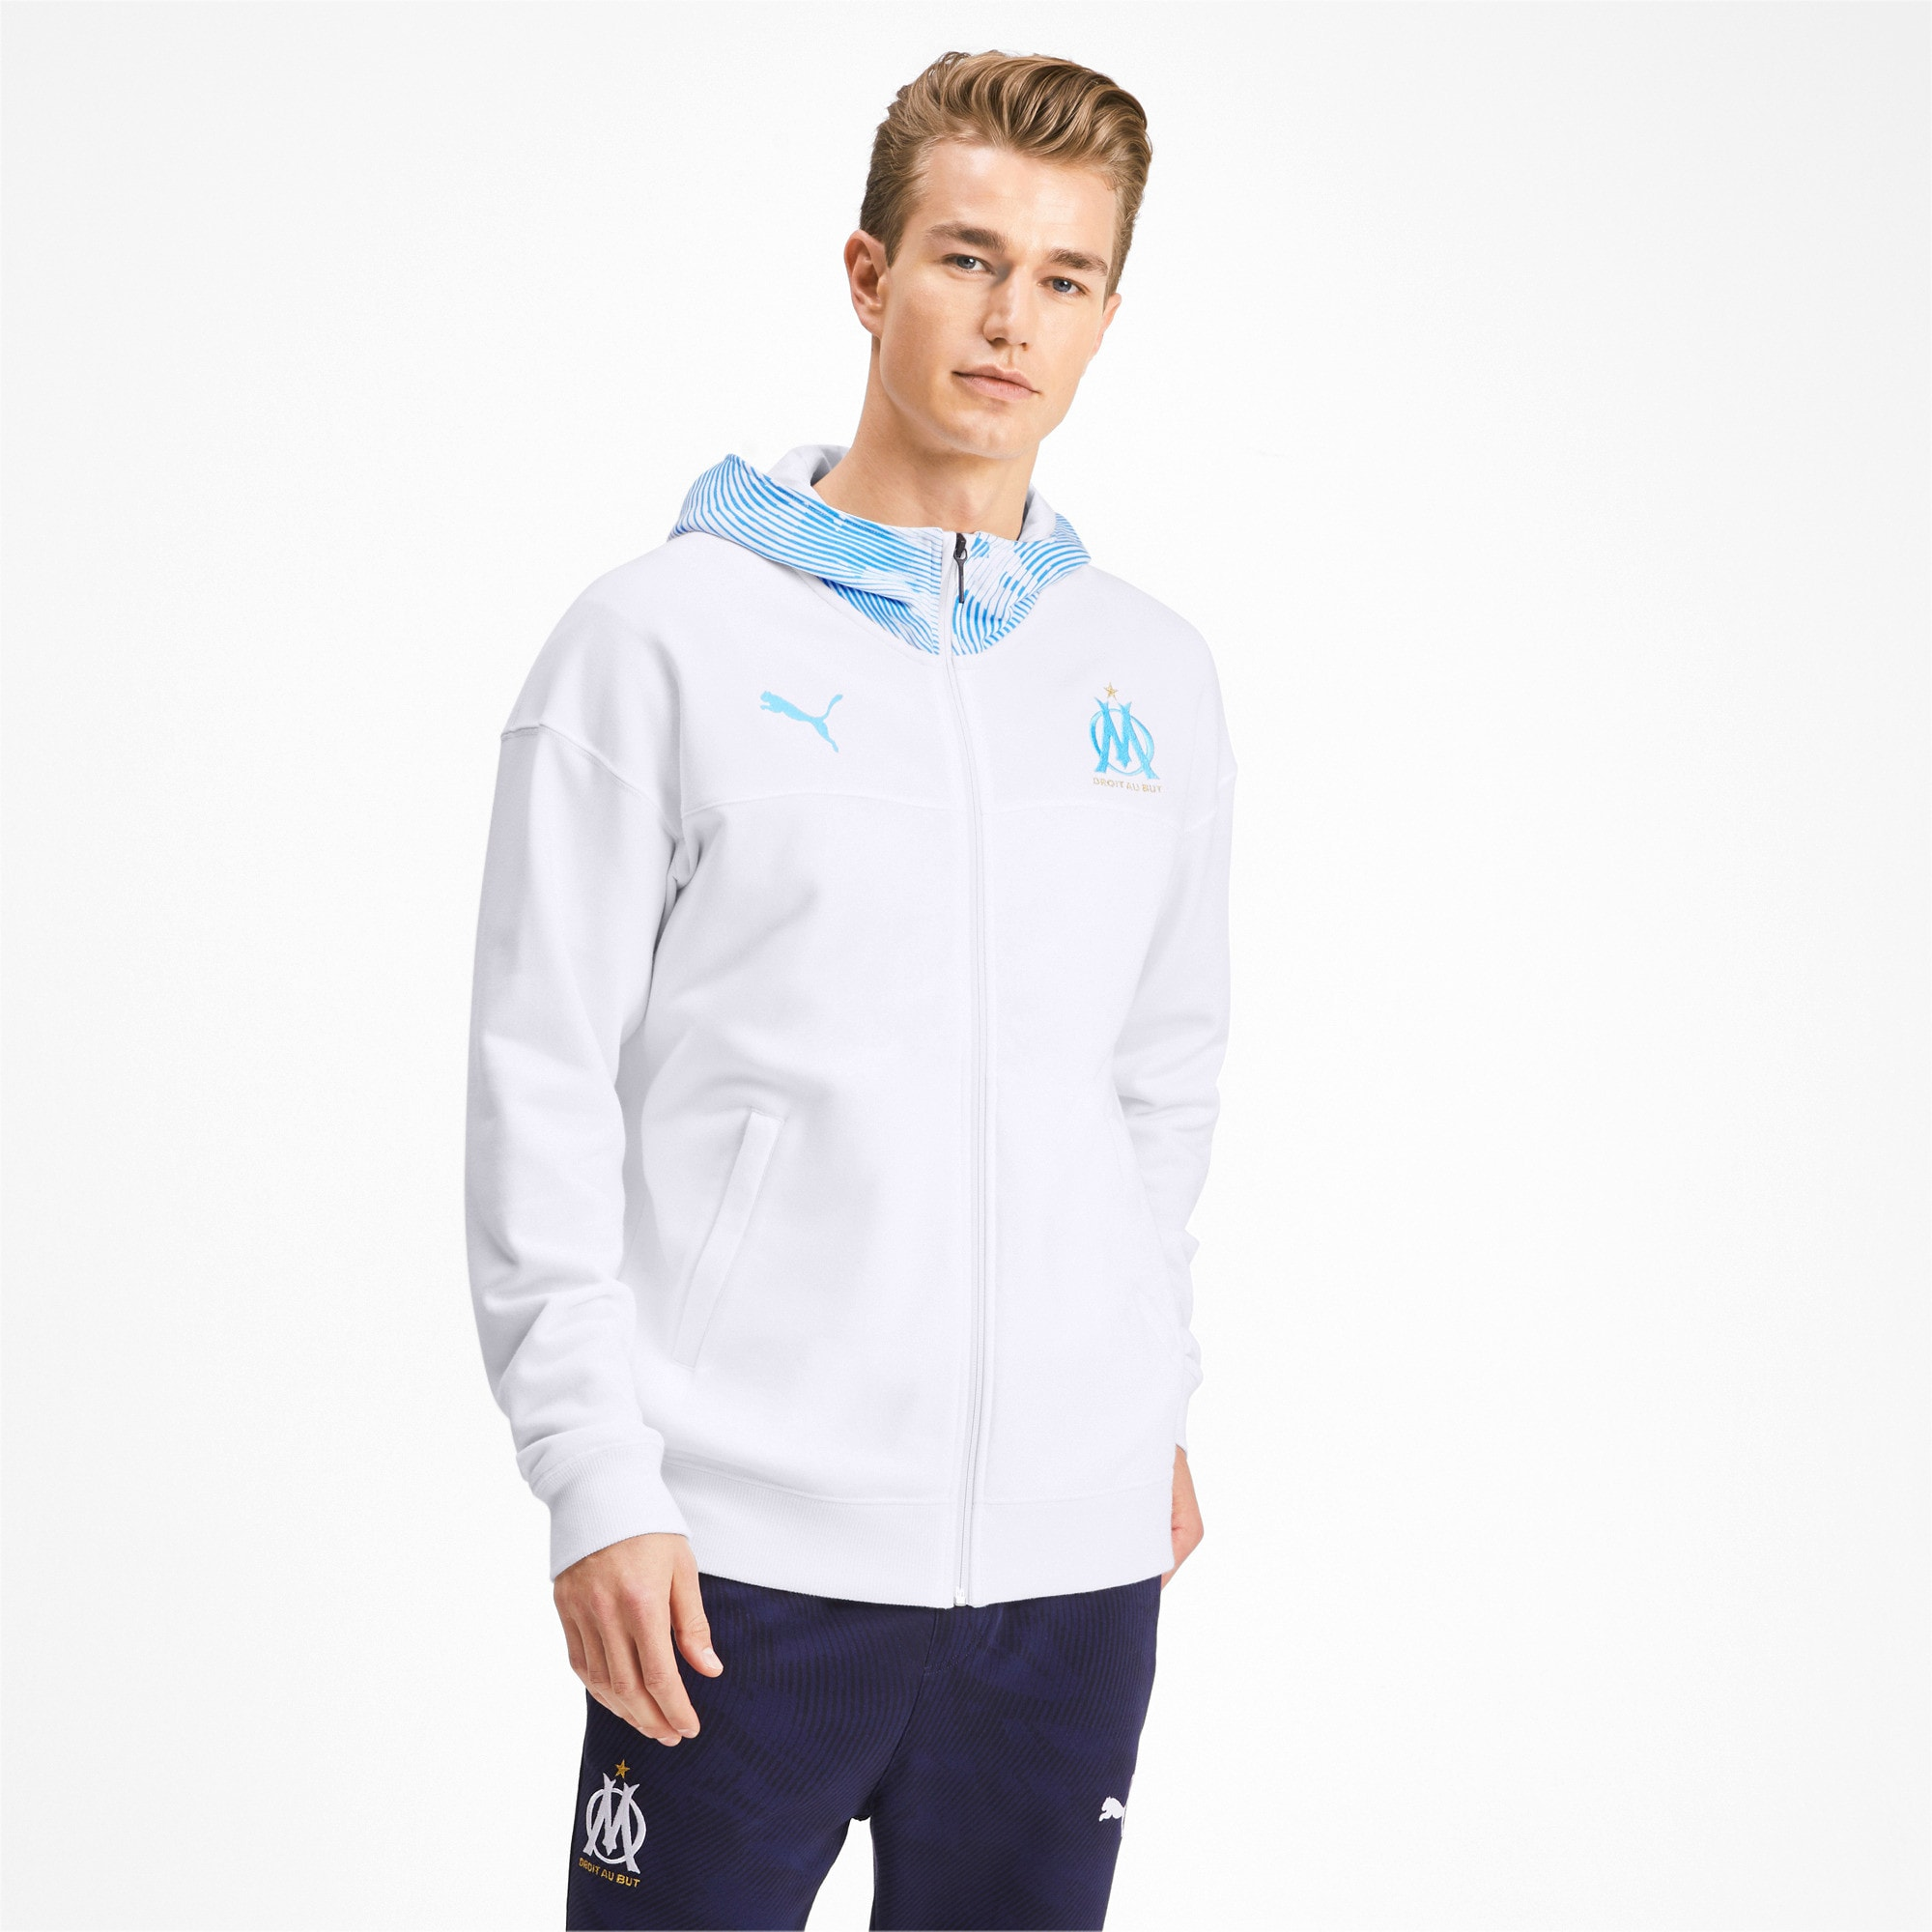 Thumbnail 1 of Olympique de Marseille Casuals Men's Zipped Hoodie, Puma White-Bleu Azur, medium